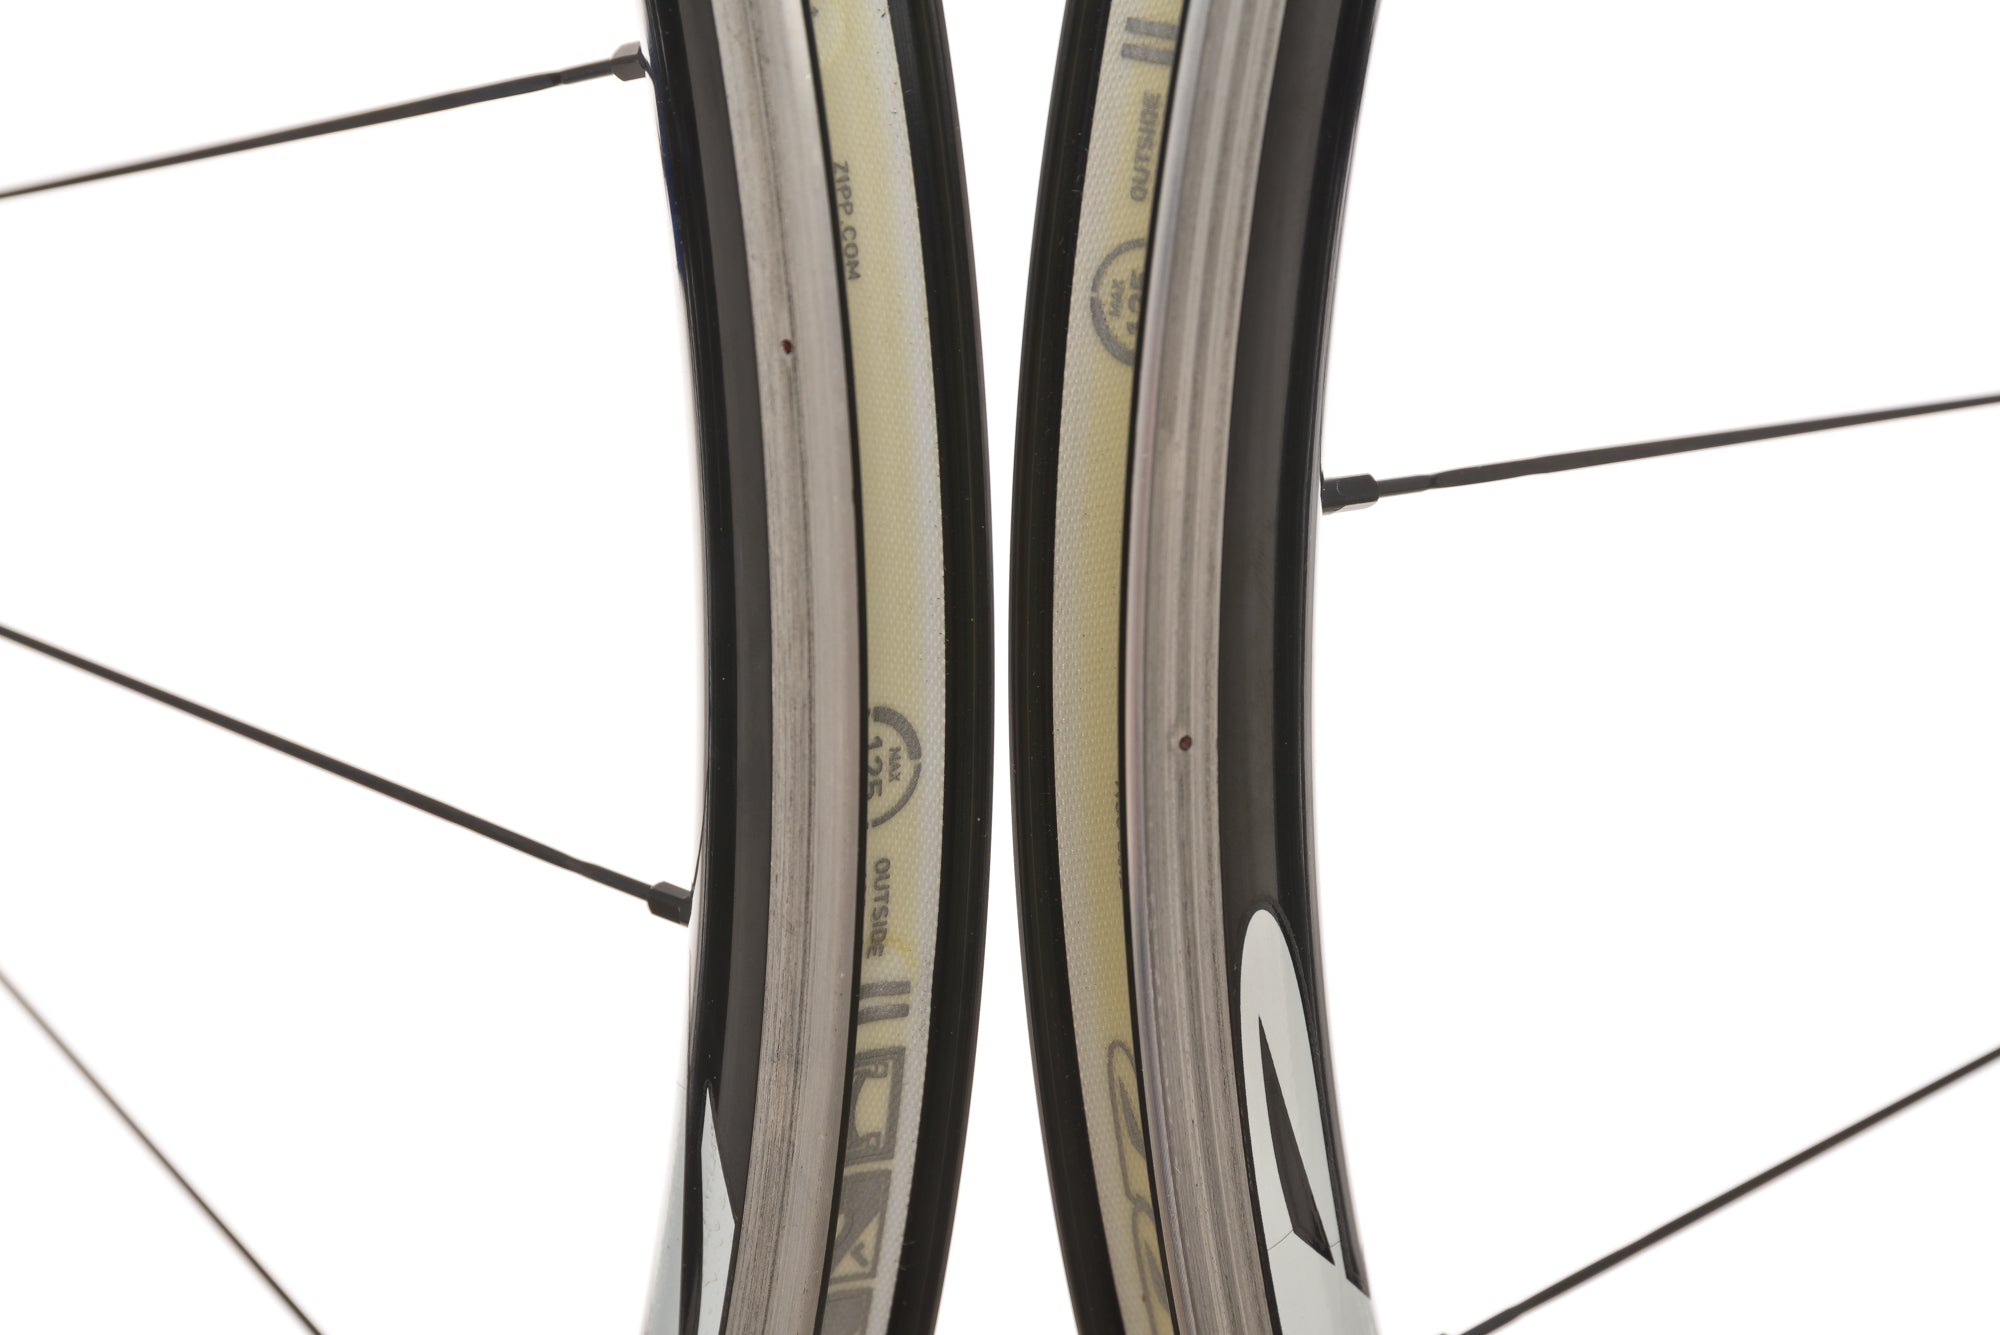 Zipp 101 Road Bike Wheelset front wheel